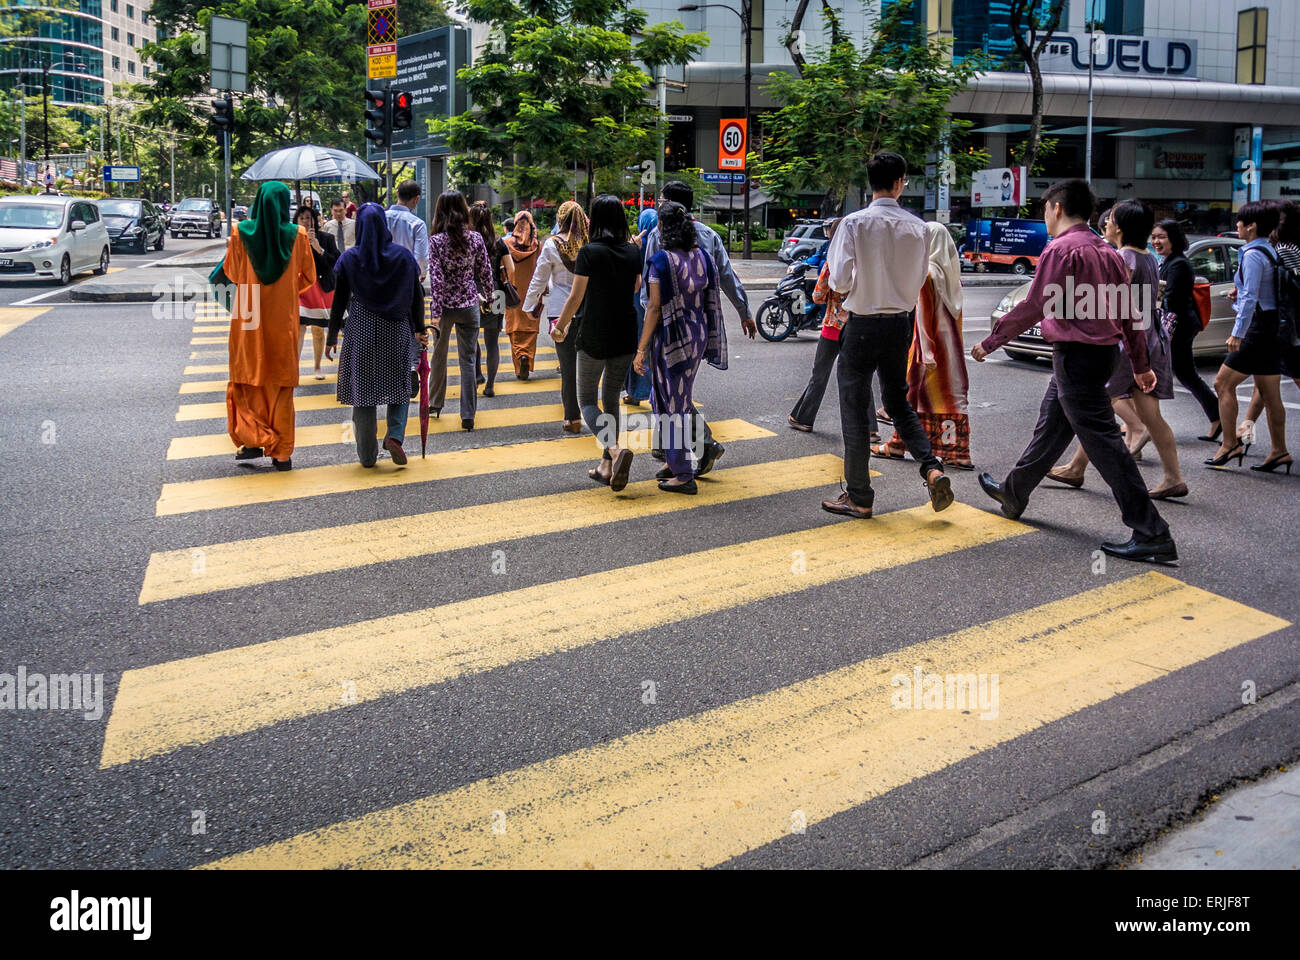 People Walking In Kuala Lumpur High Resolution Stock Photography And Images Alamy